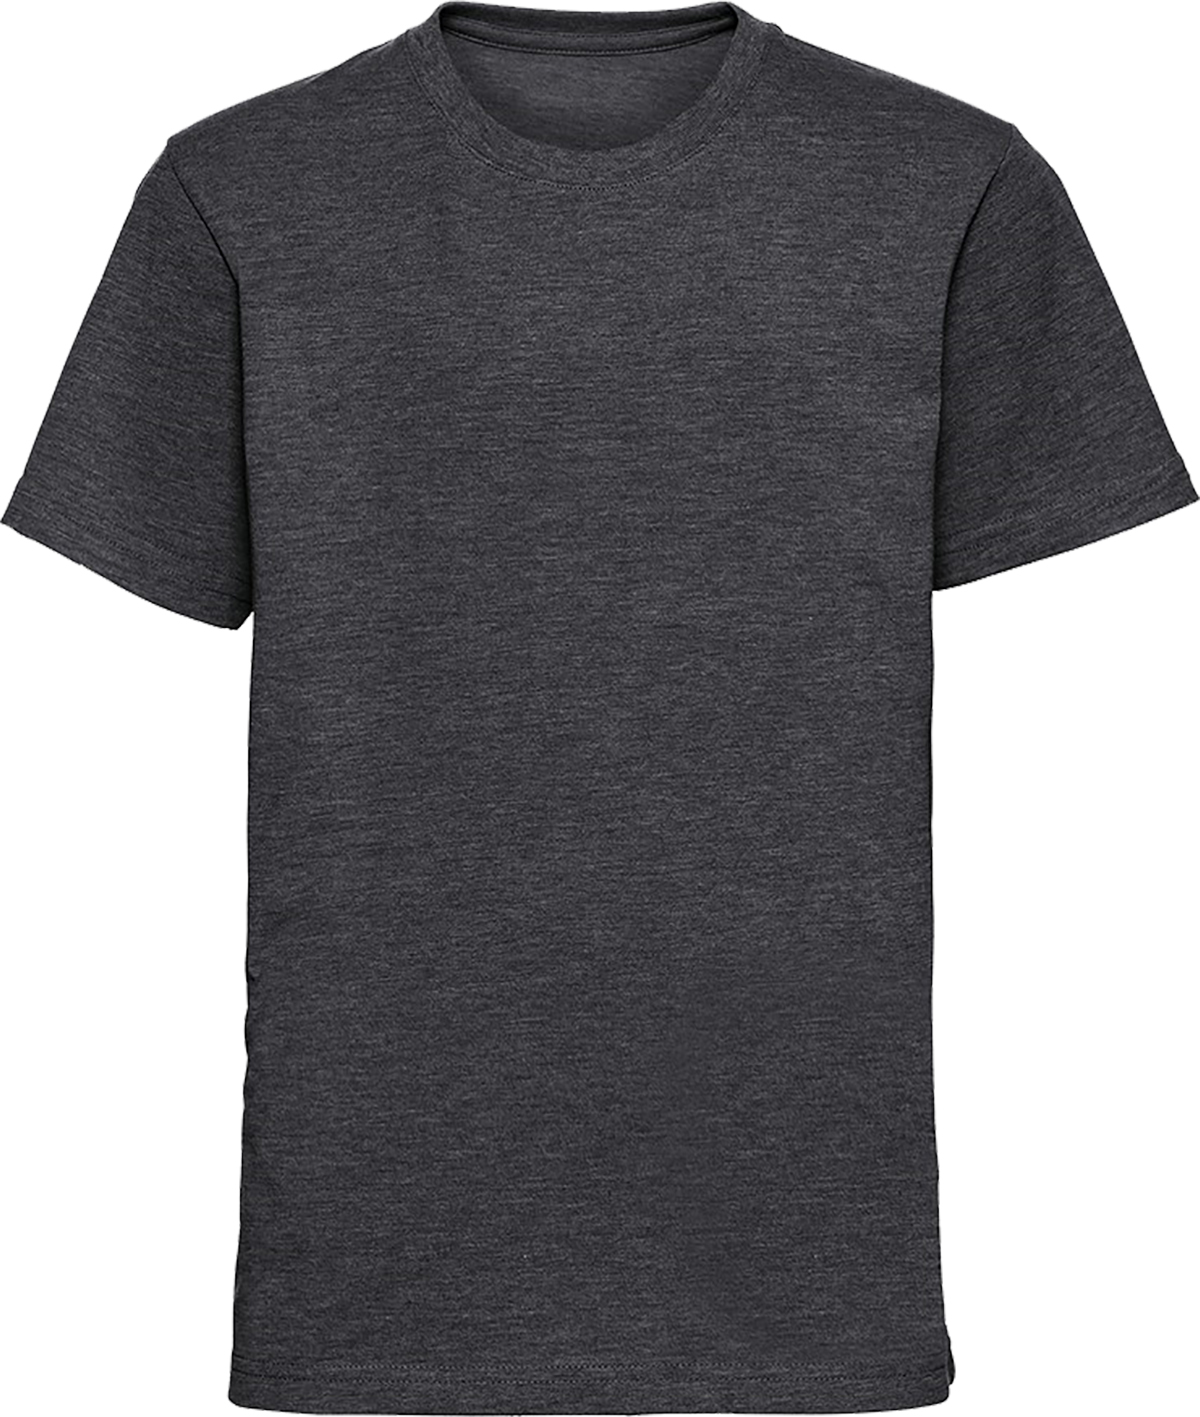 Russell Hd Boy S T Shirt Plain Top Slim Fit Tee Crew Neck Soft